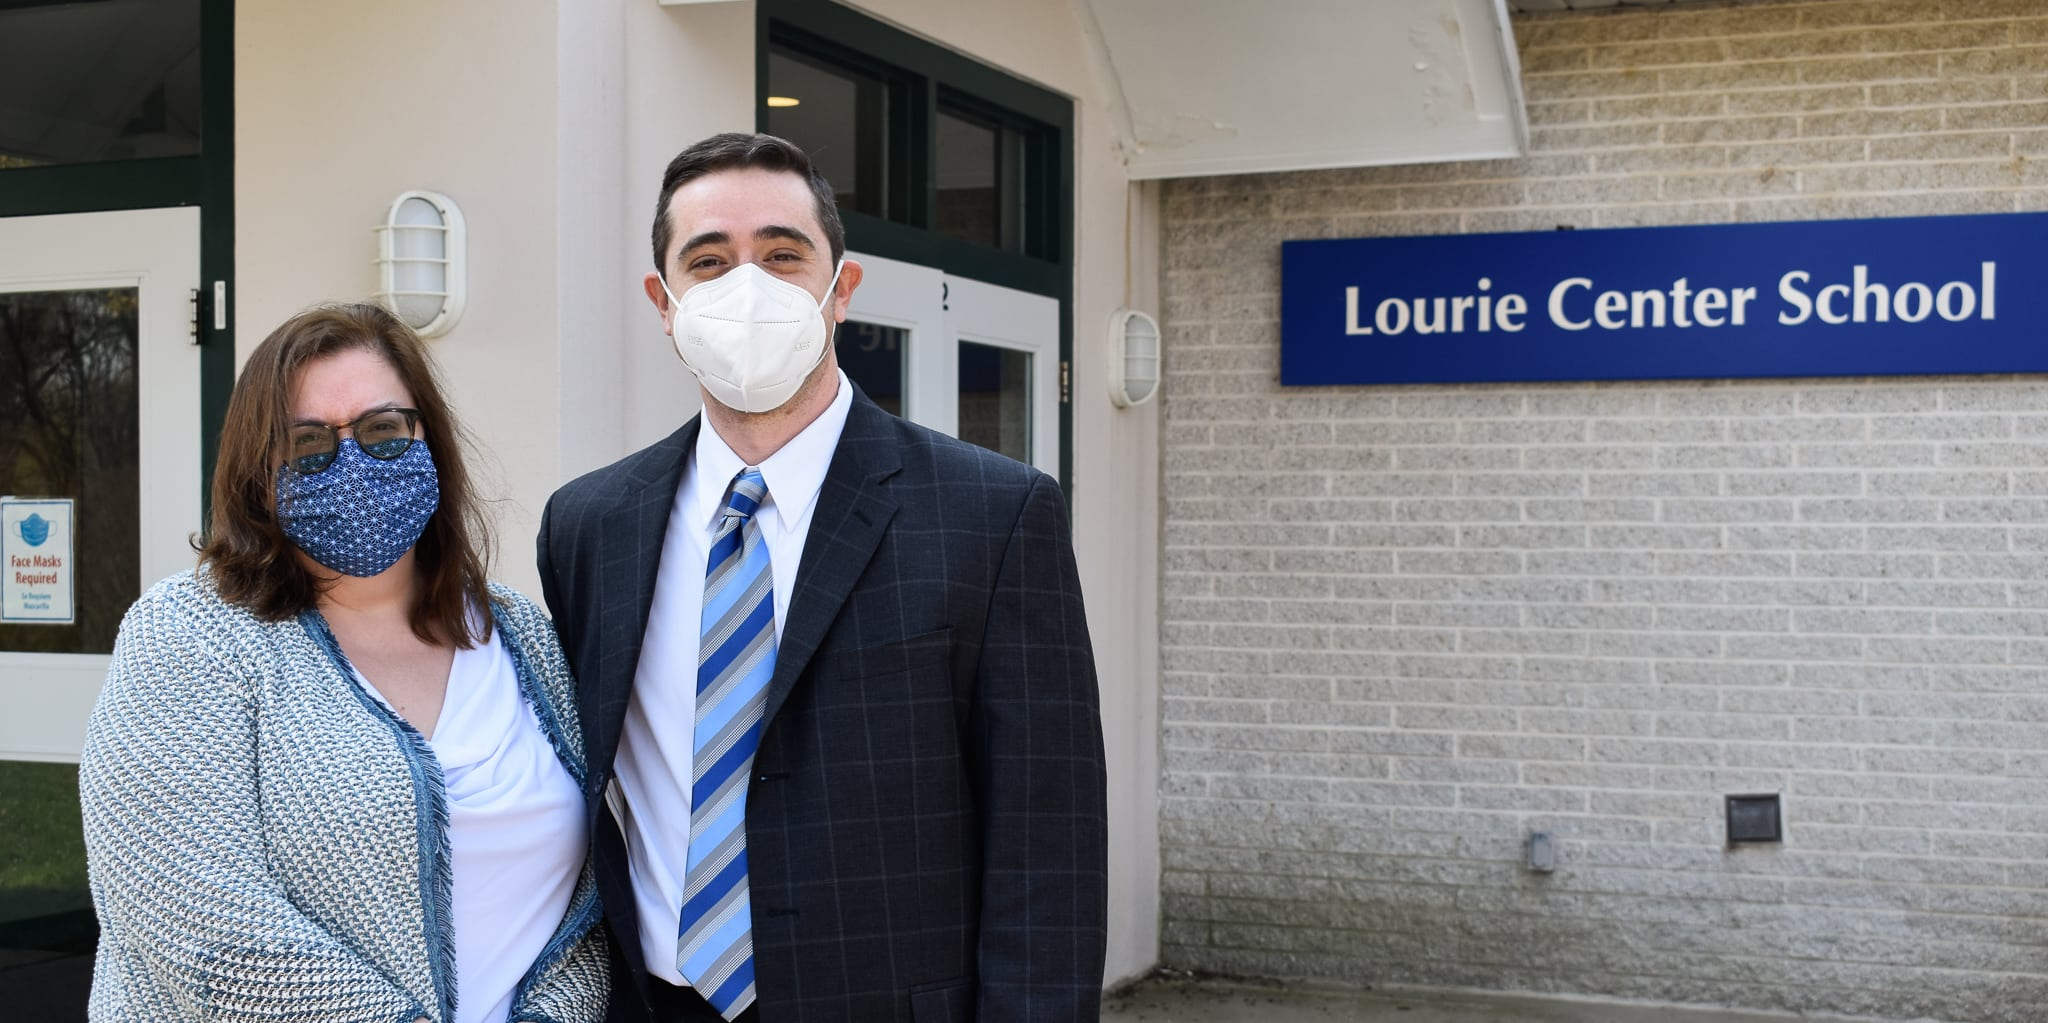 Two professionals stand outside the Lourie Center